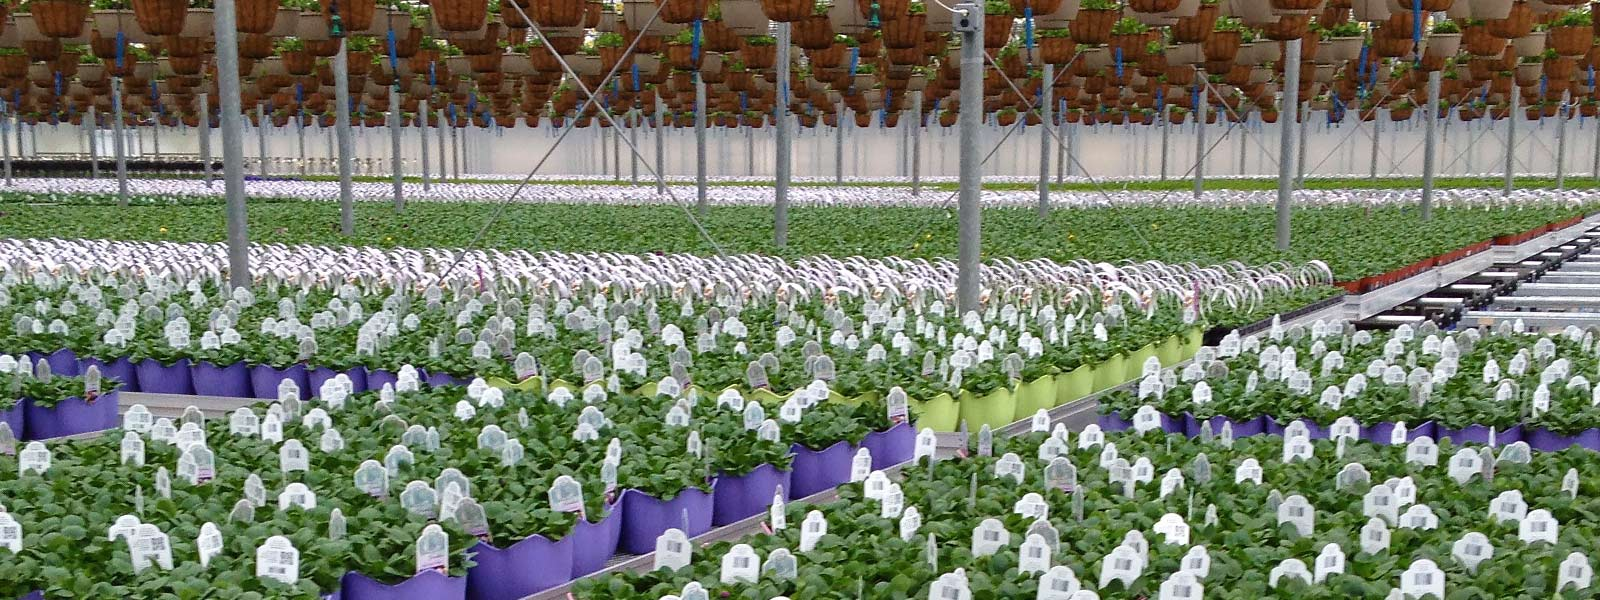 Tava Systems Greenhouse Automation in Niagara, Ontario